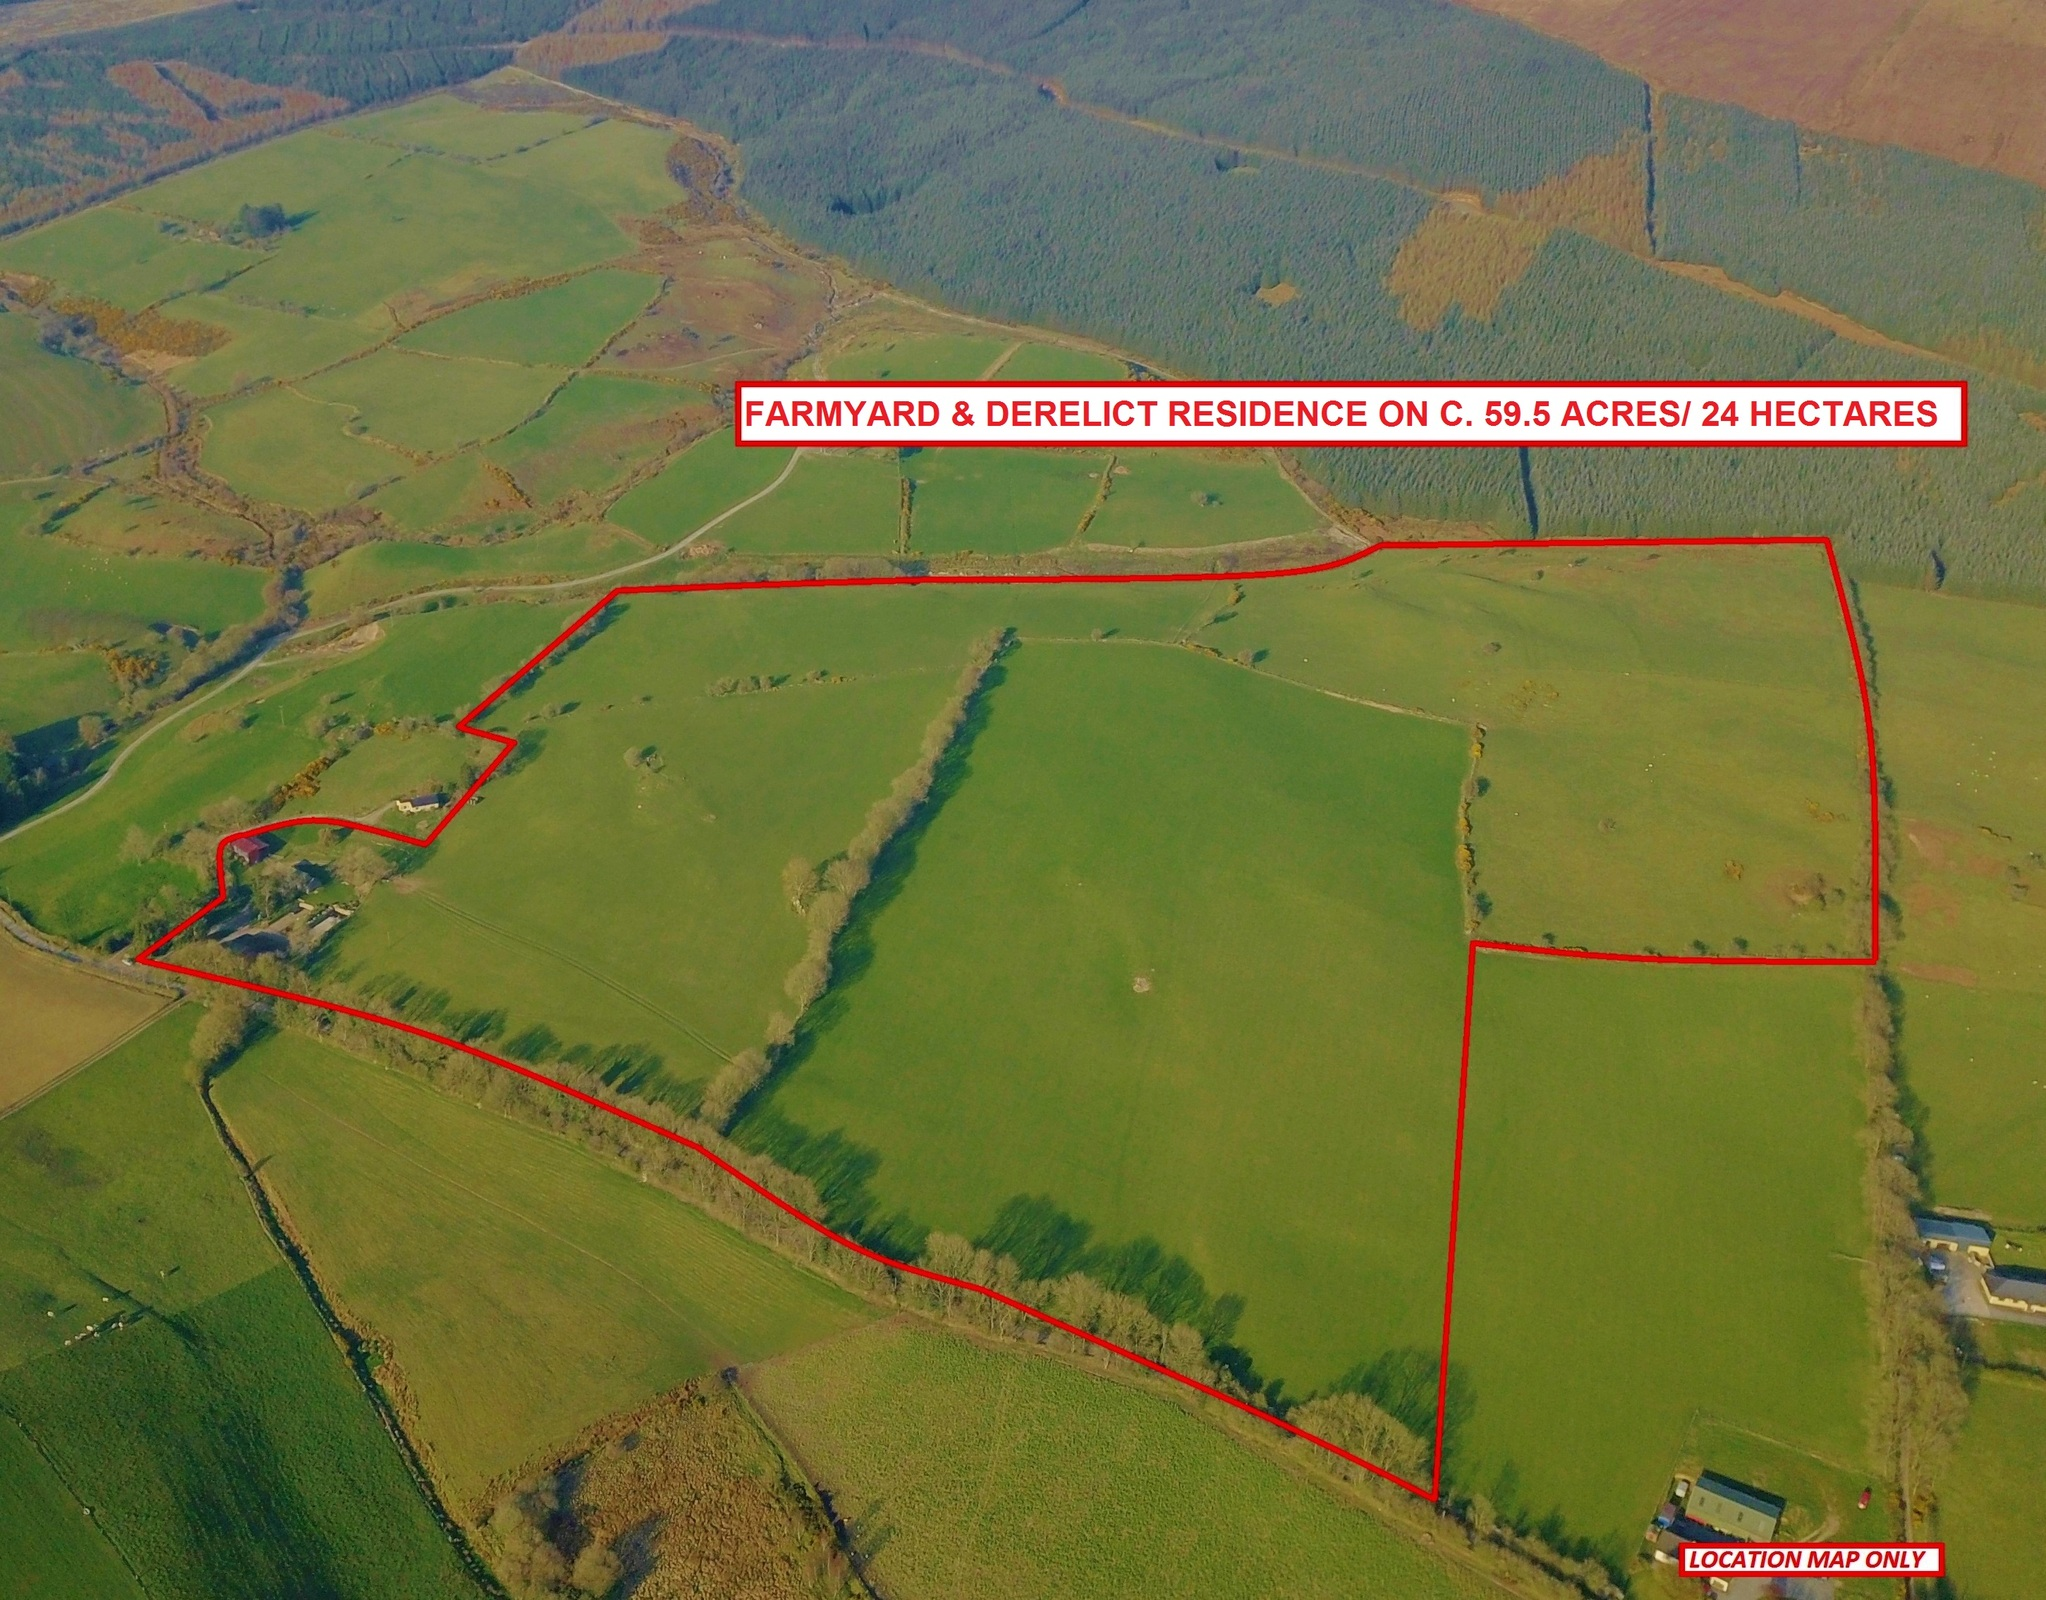 Farmyard & Derelict Residence on c. 59.5 Acres/ 24 Hectares Available In 1 or 2 Lots, Kilbaylet